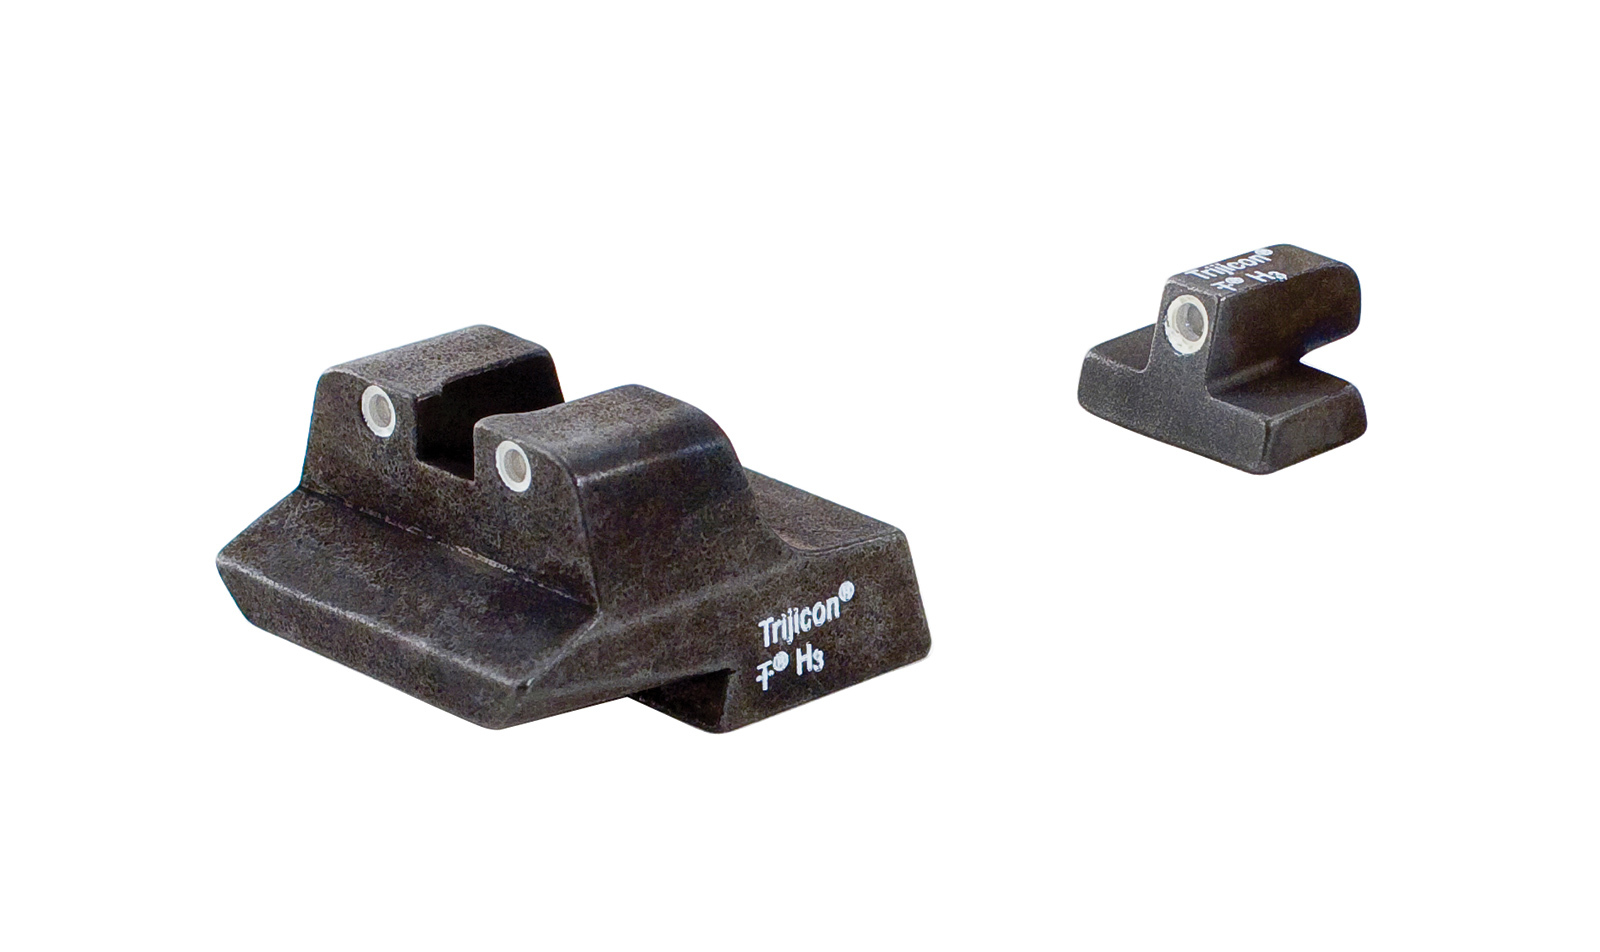 Trijicon Bright & Tought Night Sights - Smith & Wesson 1006, 1066, 1076, 1086, 4013/TSW, 4014, 4053, 4054, & 4553TSW